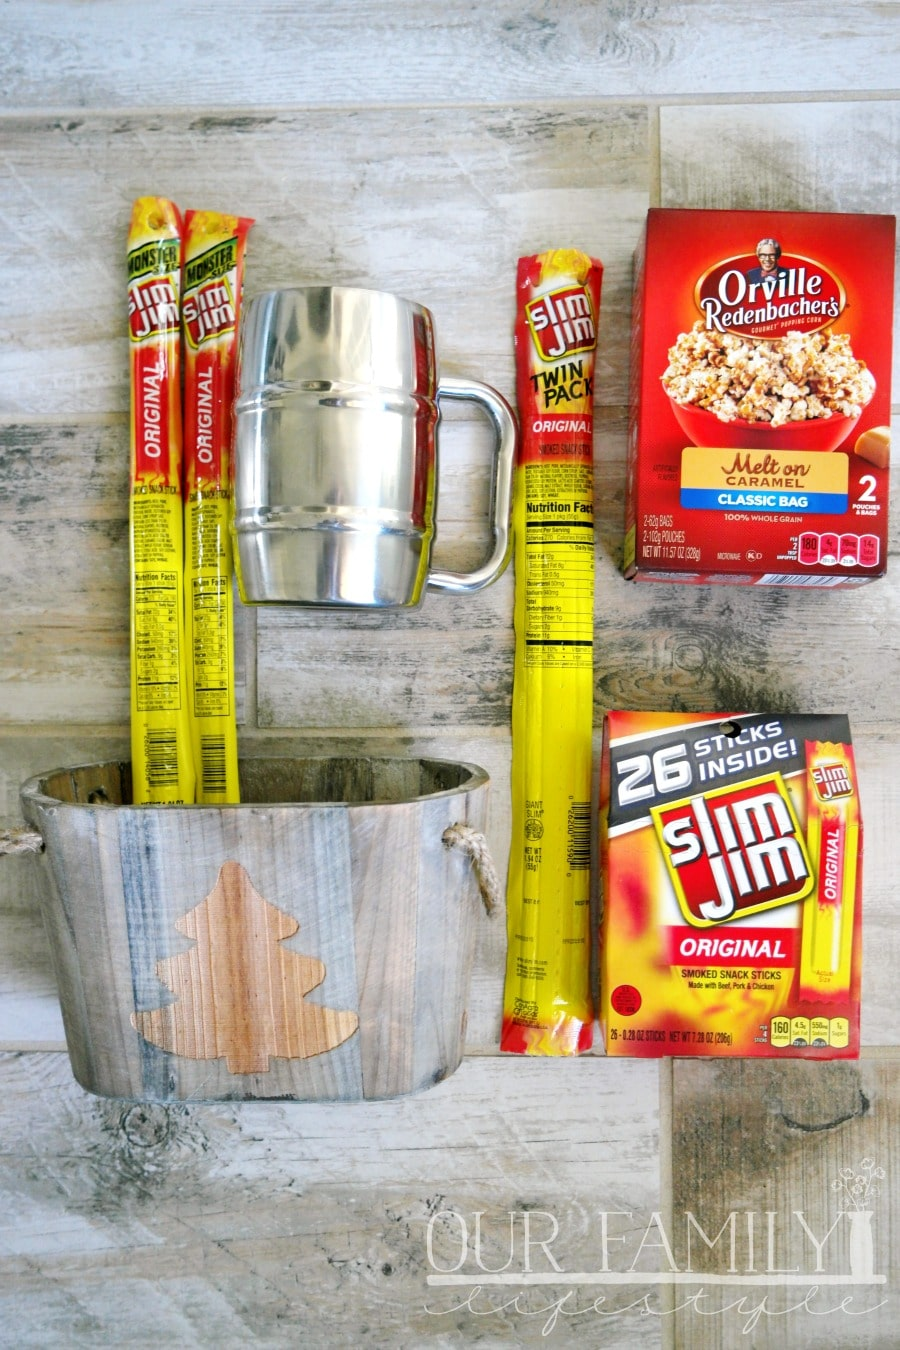 Think Outside the Stocking with Slim Jim